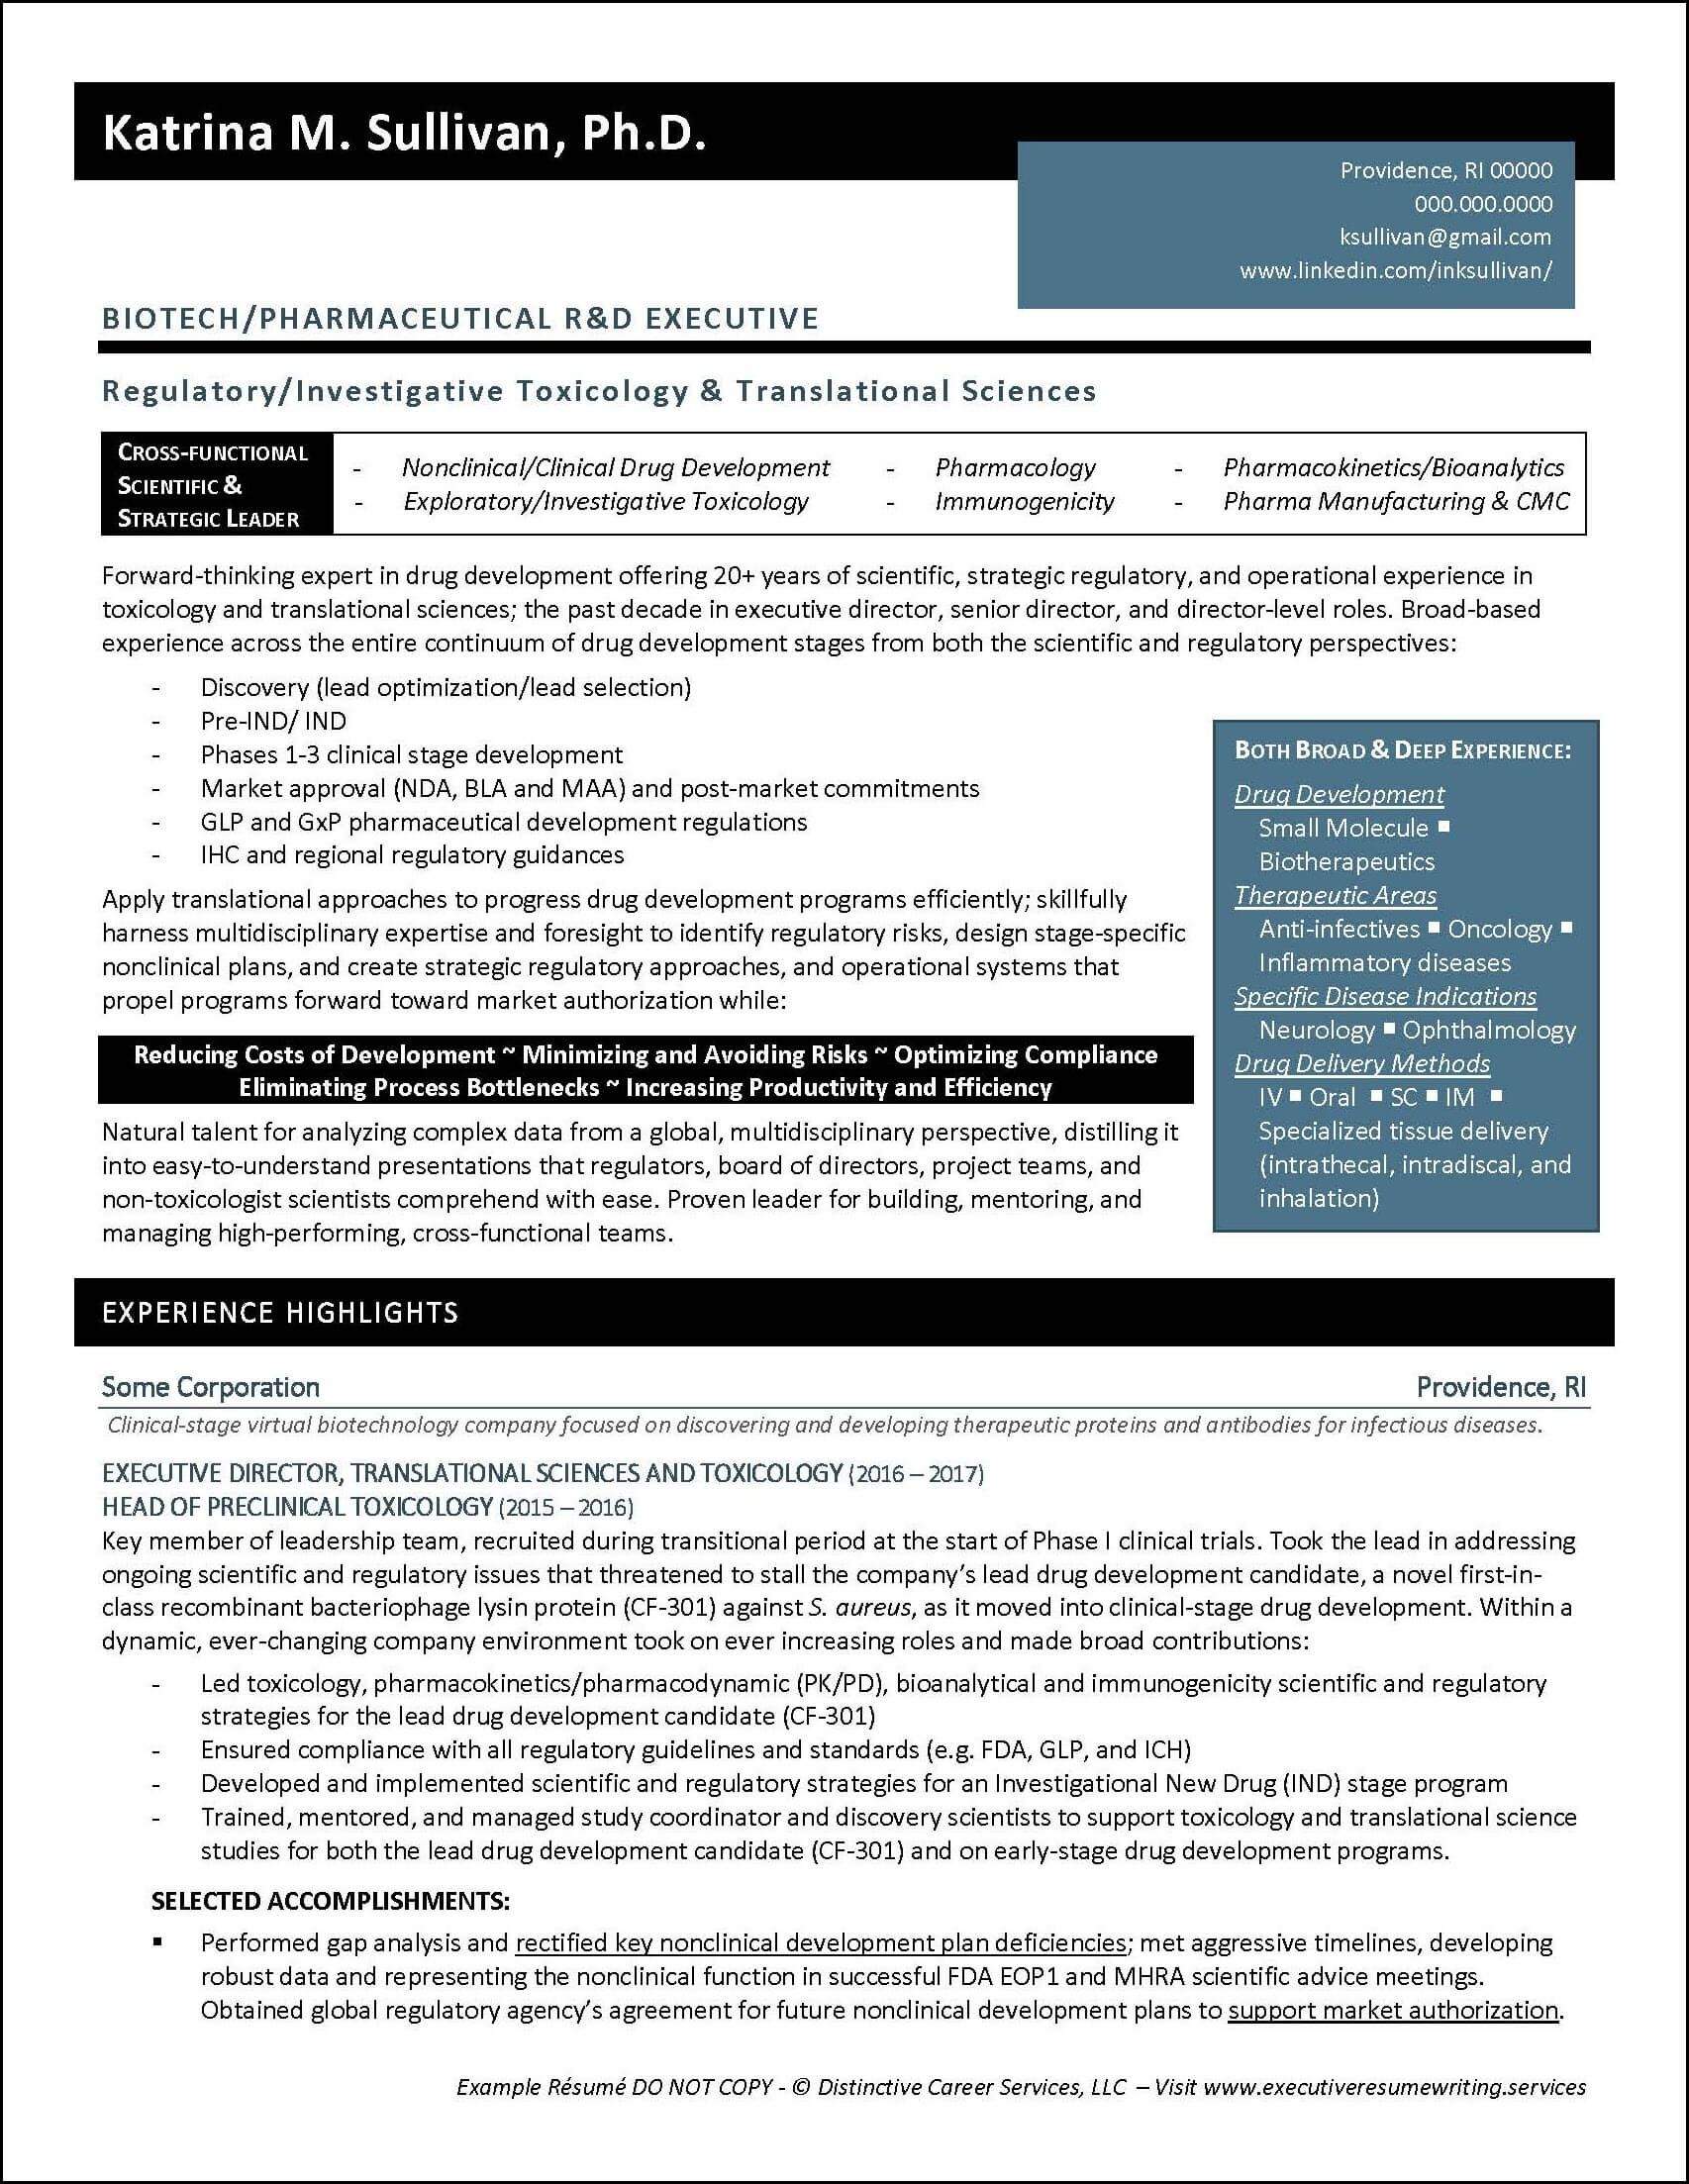 Example Executive Resume Biotech R D Pg1 Resume Examples